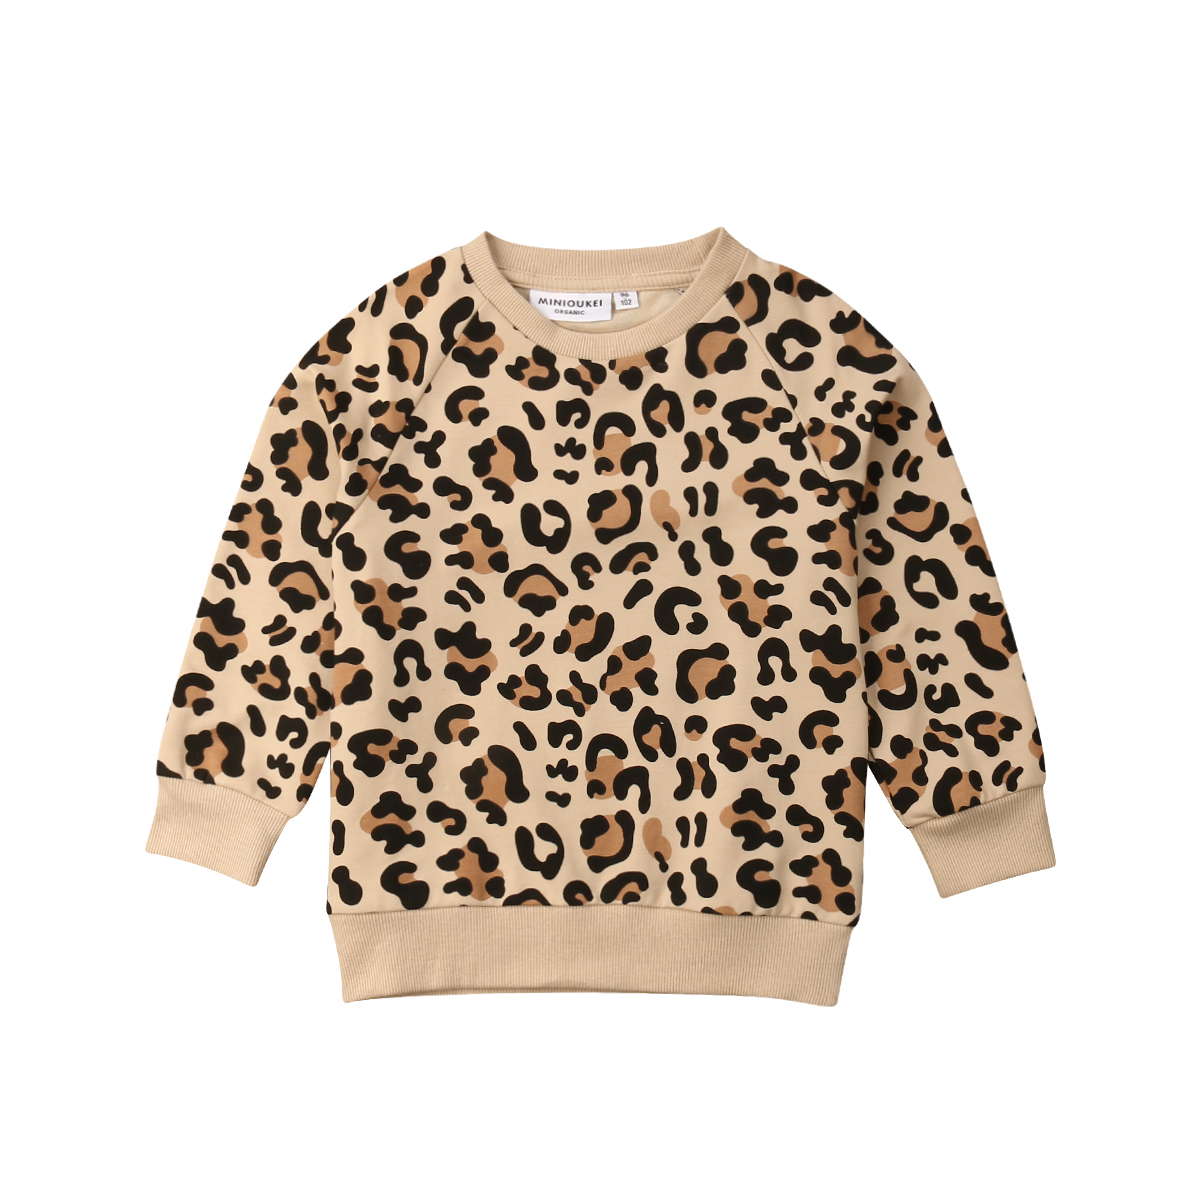 T-Shirt Leopard-Print Toddler Baby-Girl Boy Top Kid 1-7years Bunny